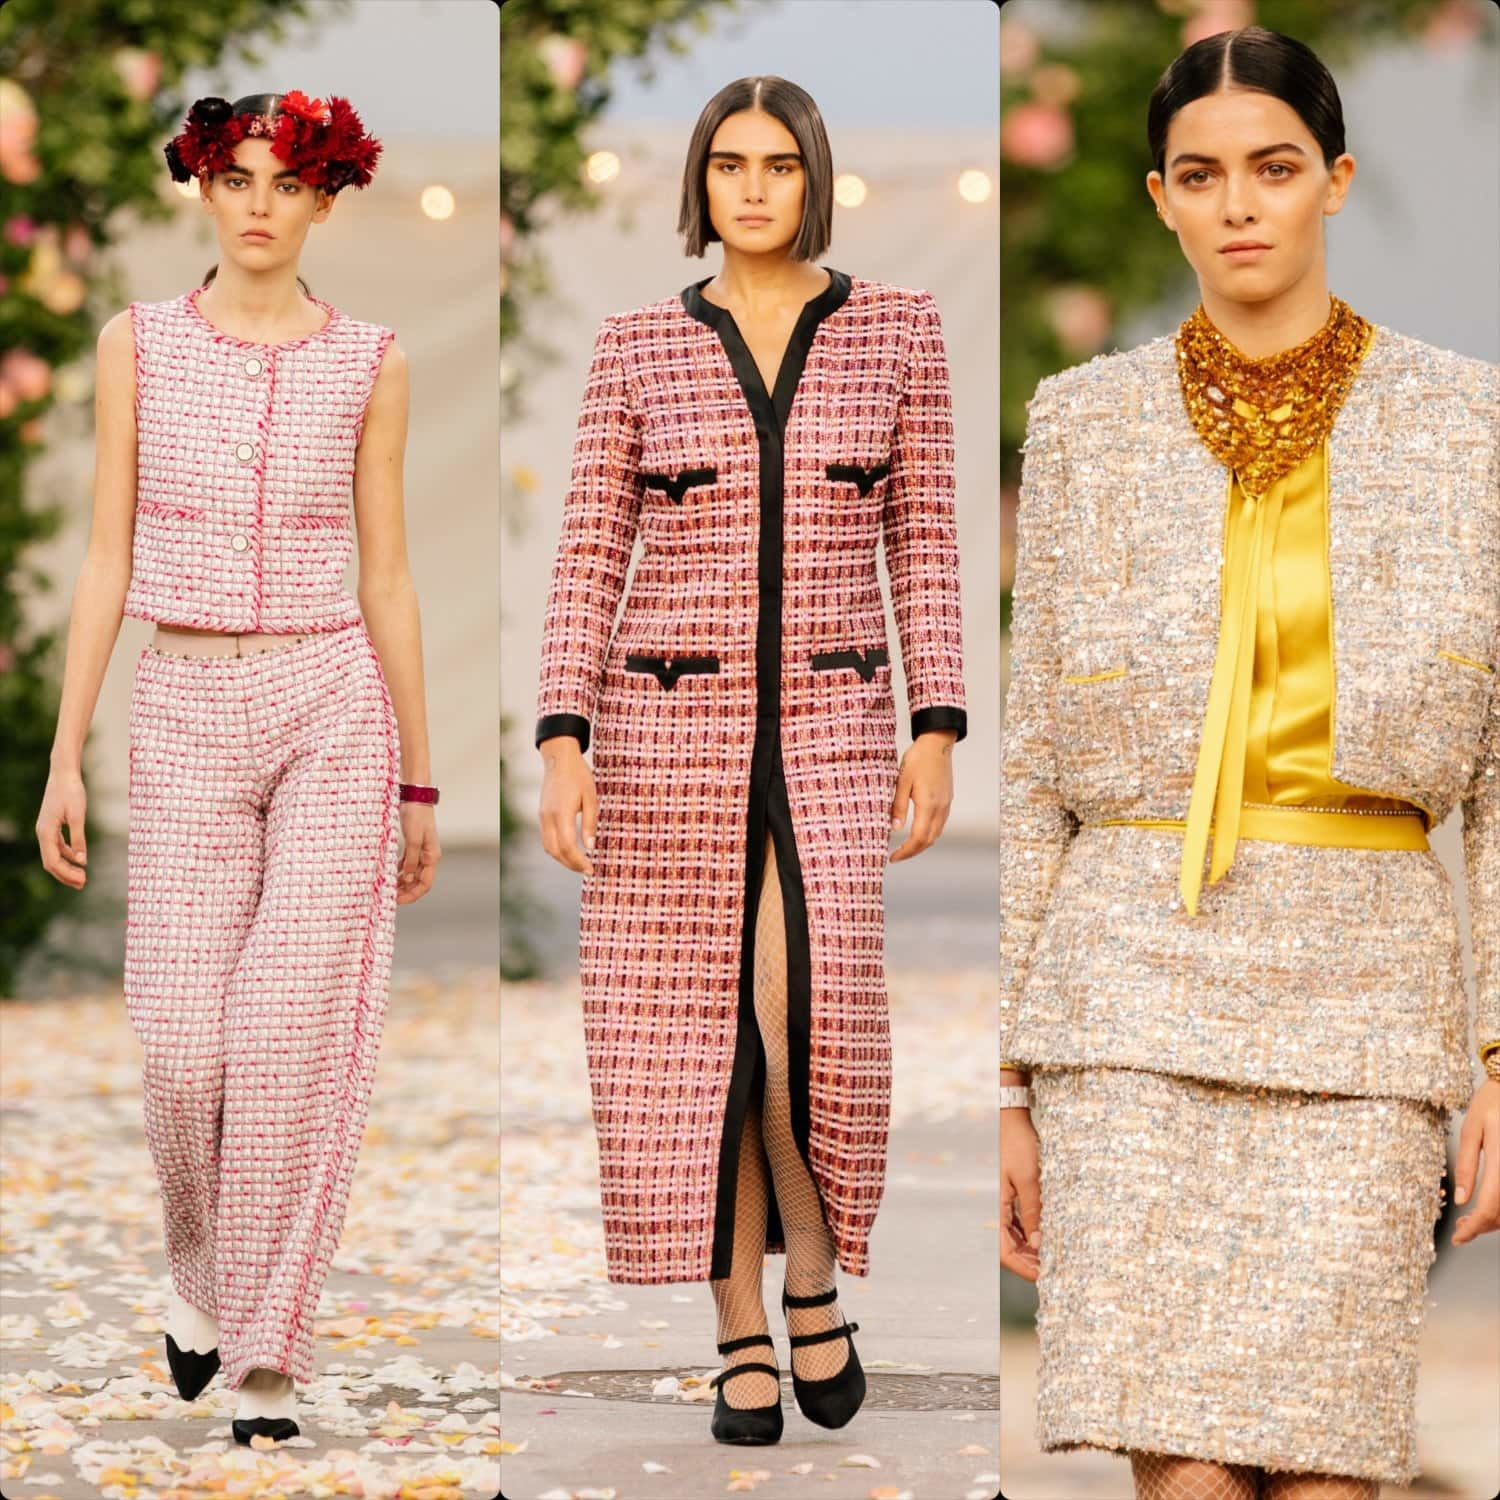 ПОКАЗ CHANEL HAUTE COUTURE SPRING 2021